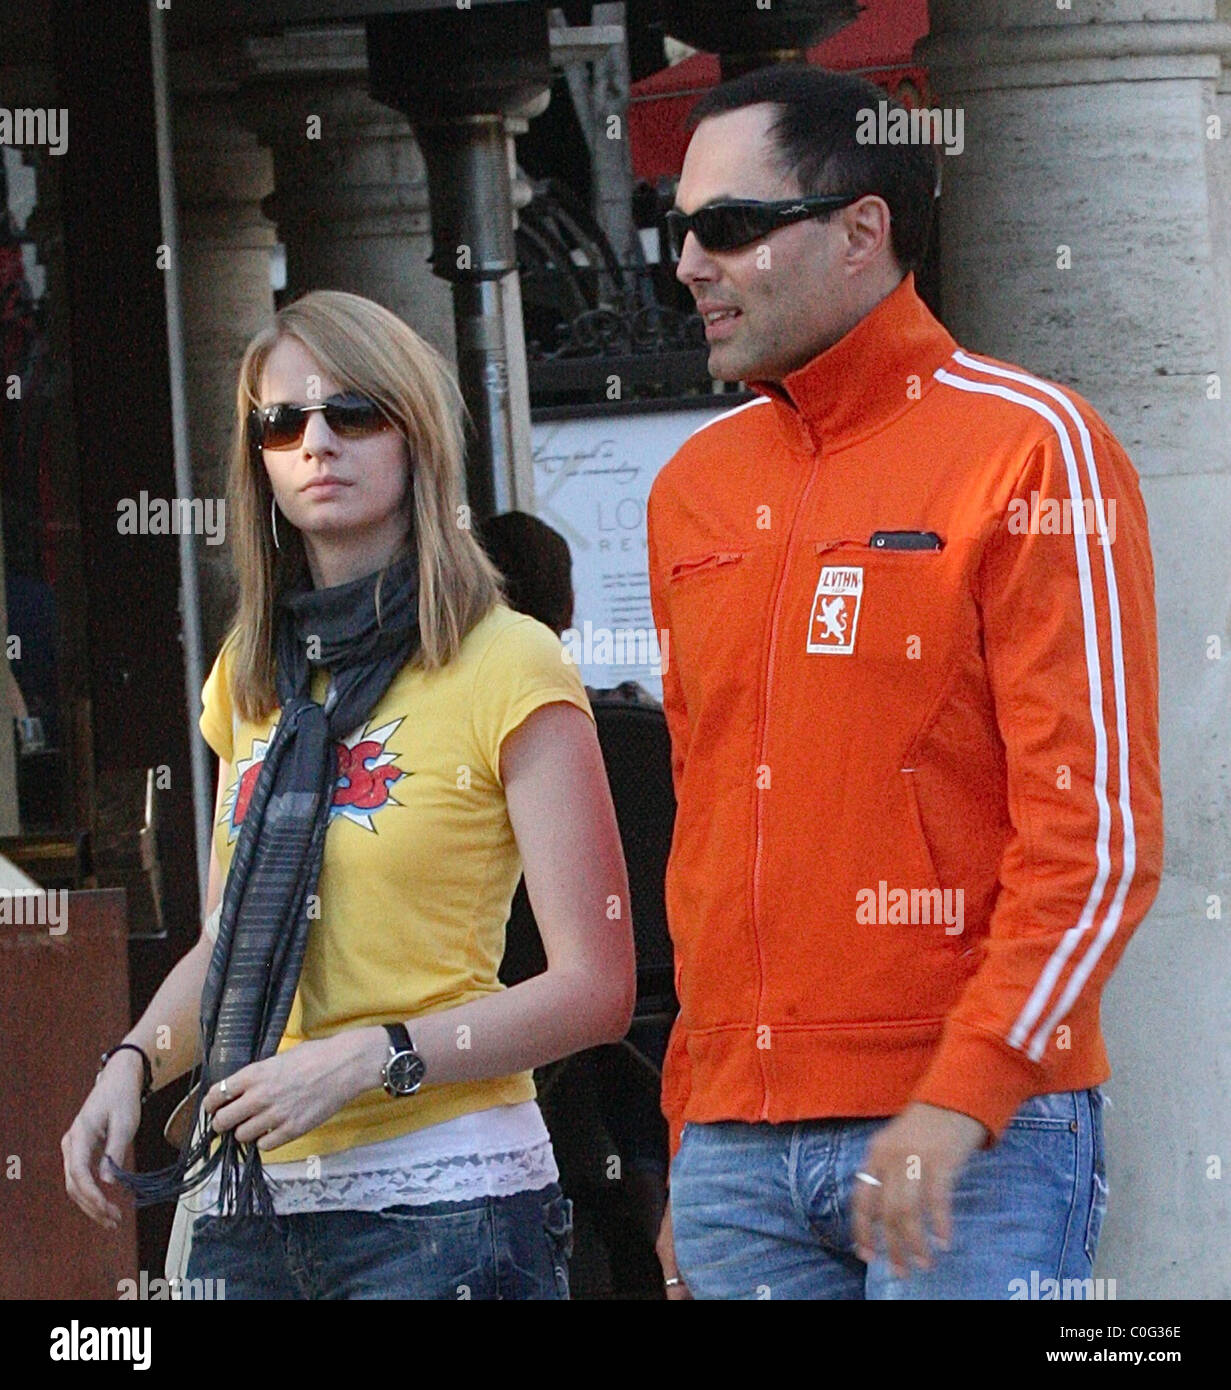 James Haven Voigt and a mystery woman at the Grove in West Hollywood Los Angeles, California - 09.06.08 : - Stock Image